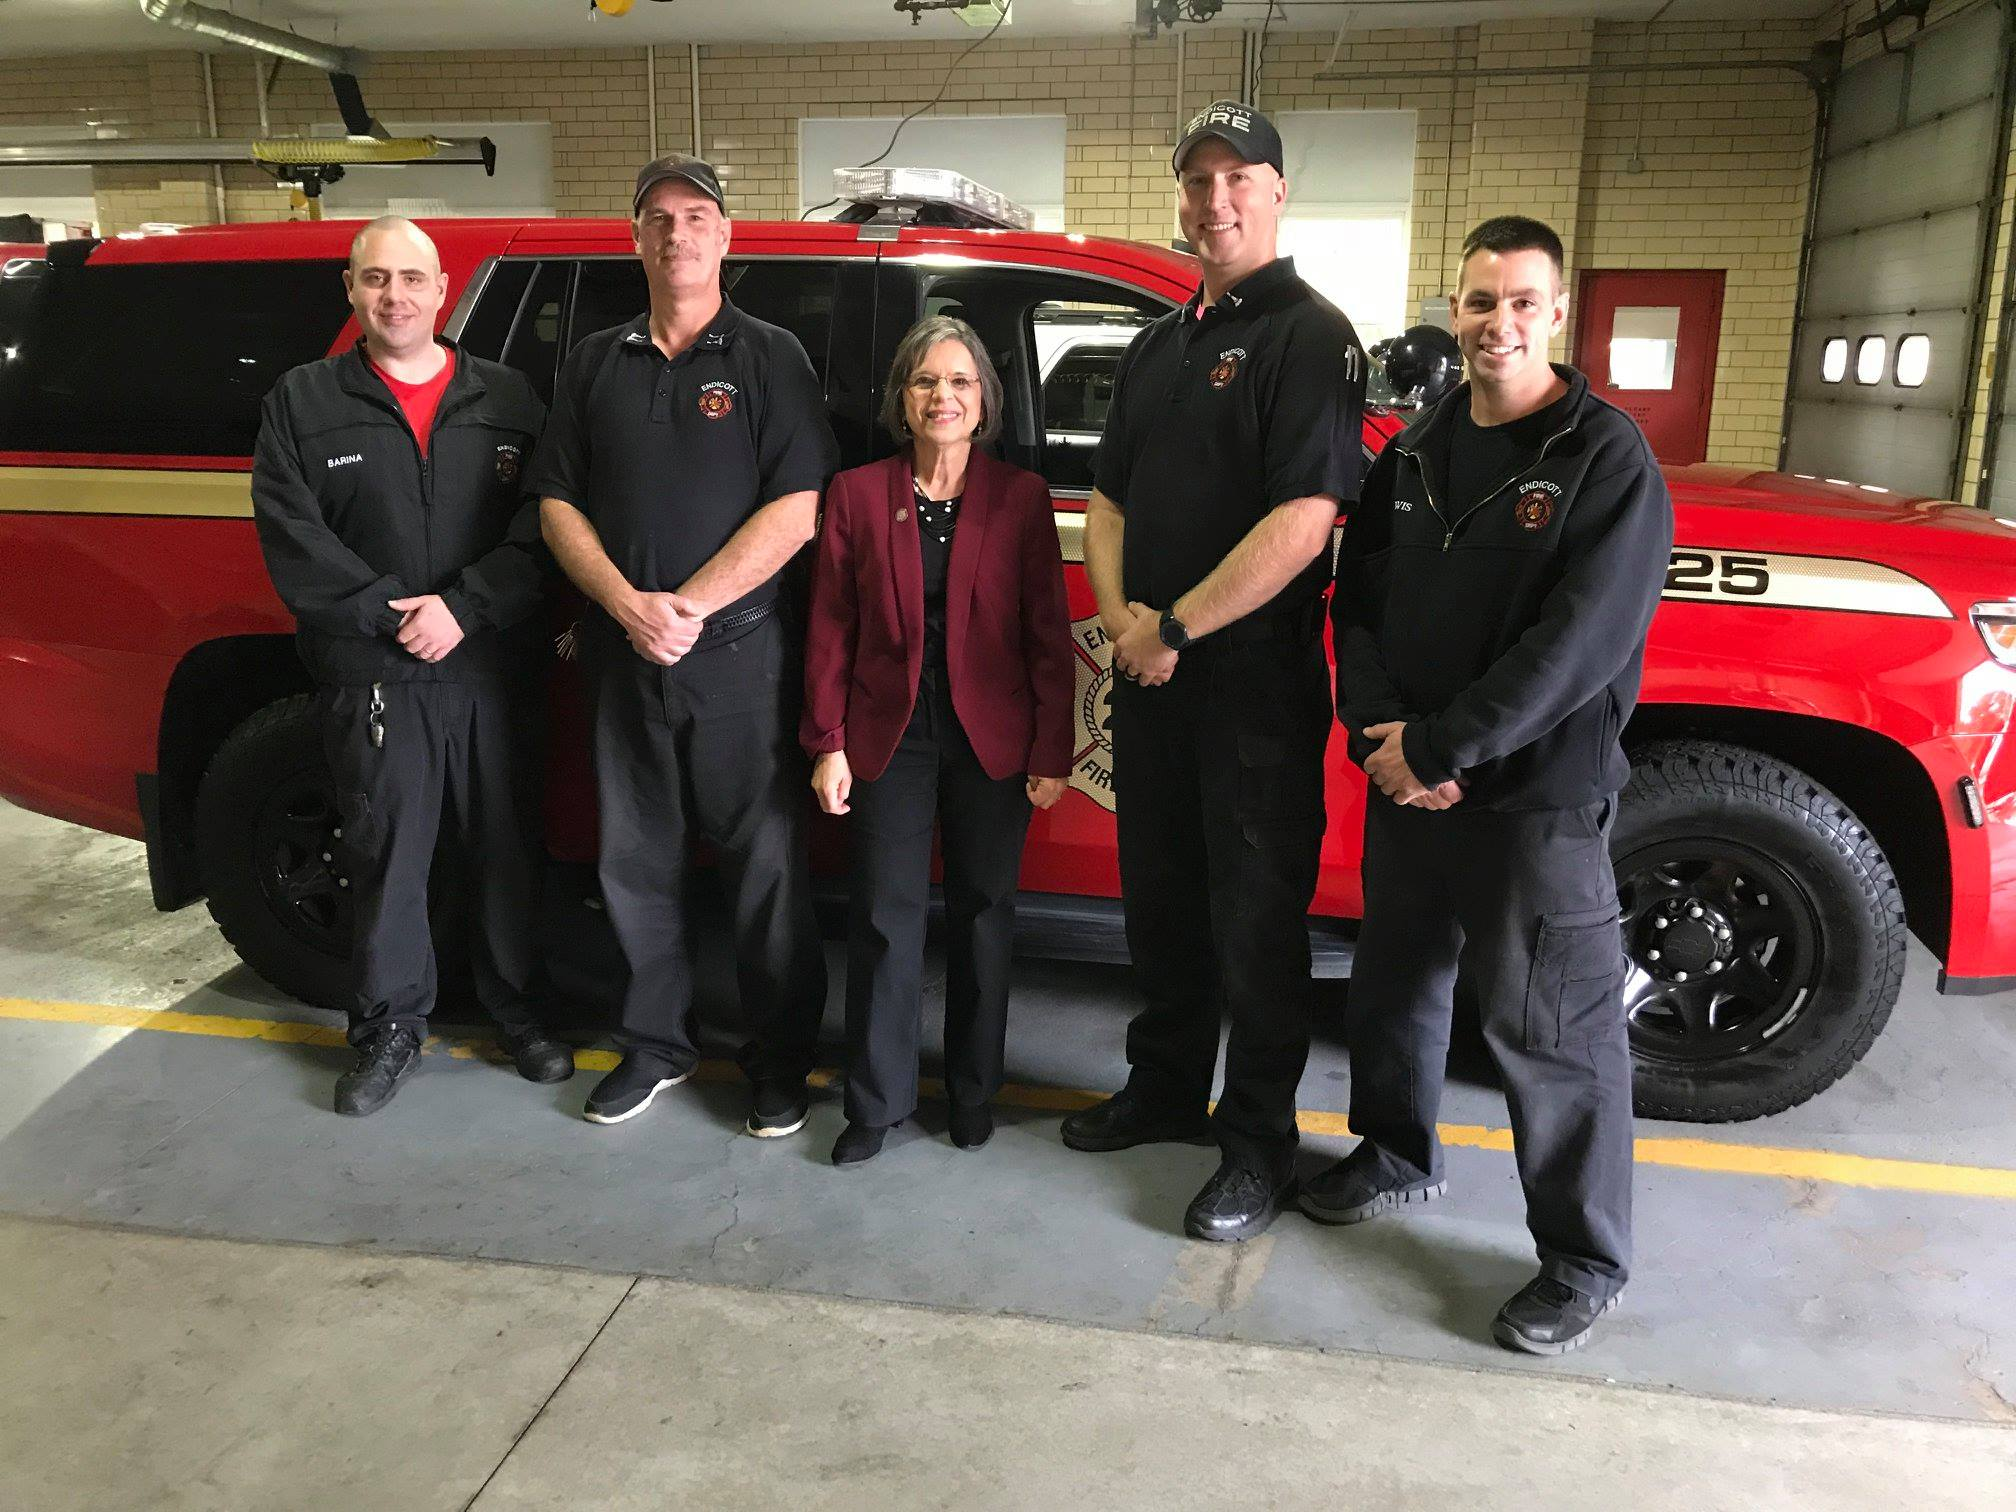 October 26, 2018 – Assemblywoman Lupardo with members of the Endicott Fire Department. Lupardo secured $40,000 for a new emergency response vehicle.